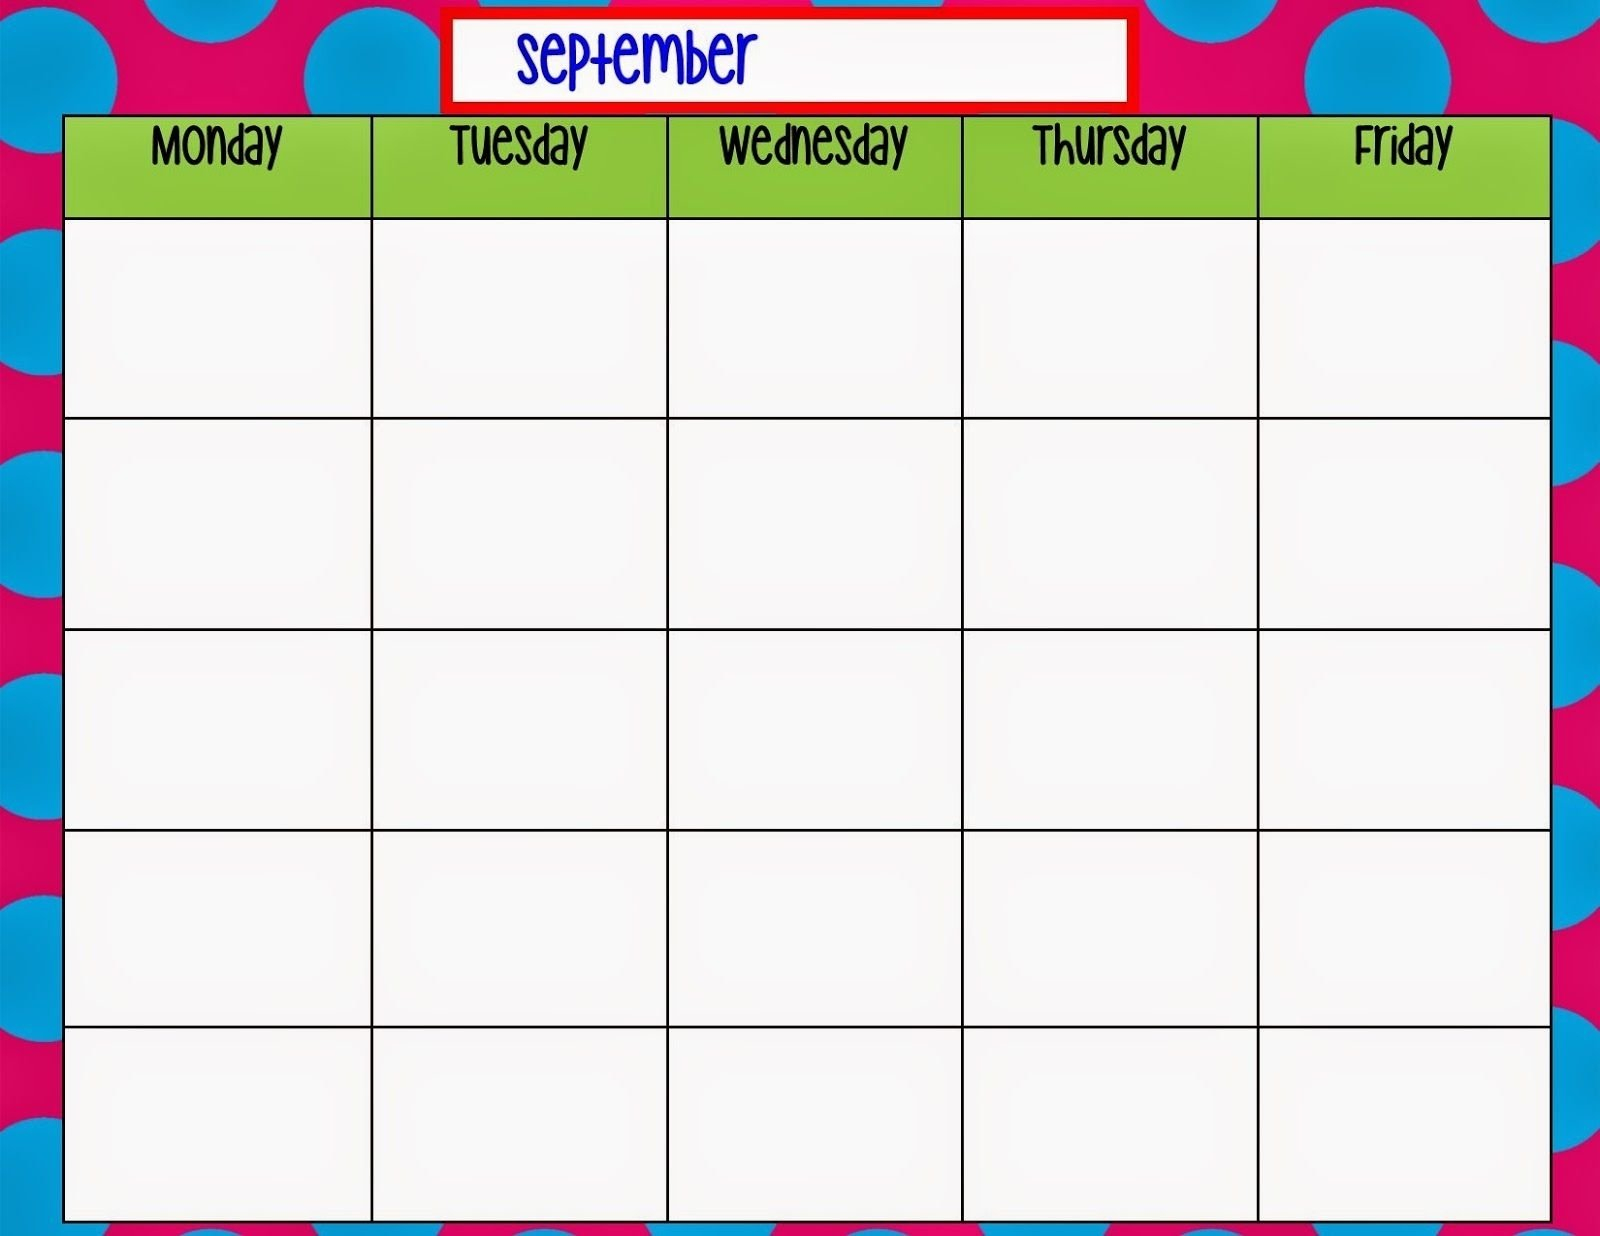 Blank Monday Through Friday Weekly Calendar Without Downloadable Monday To Friday Calendar